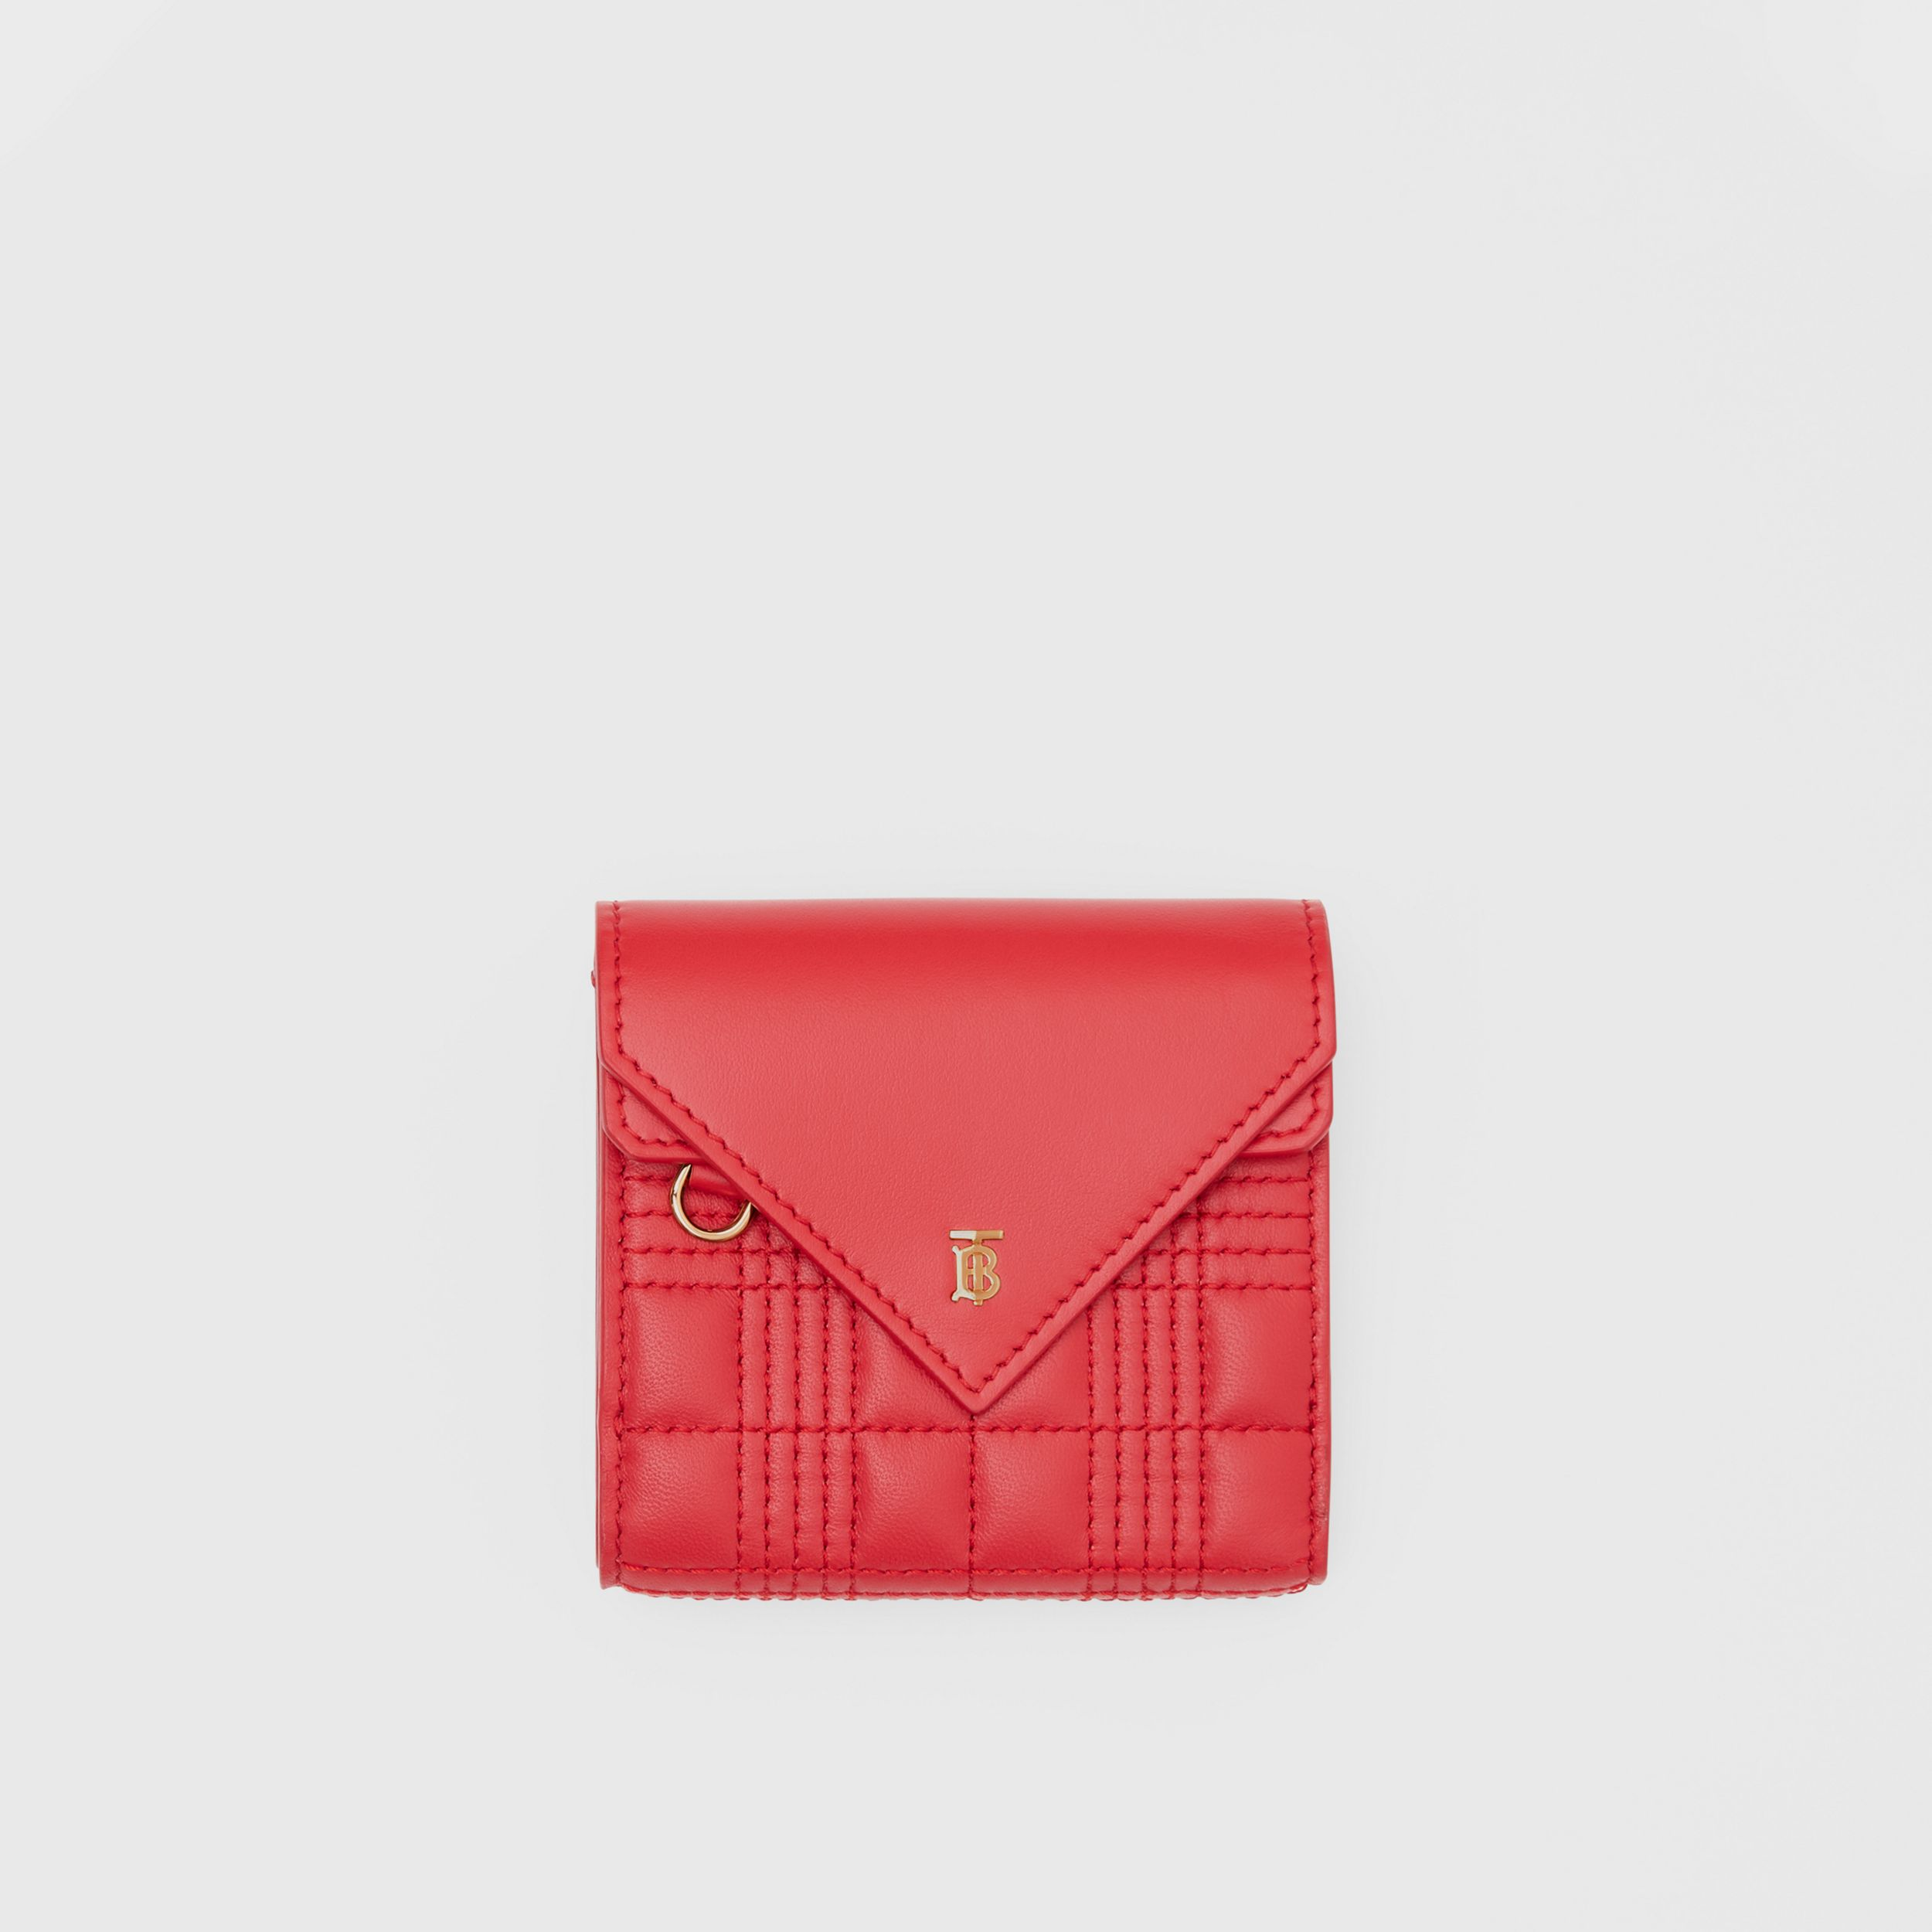 Quilted Lambskin Folding Wallet in Bright Red - Women | Burberry Australia - 1